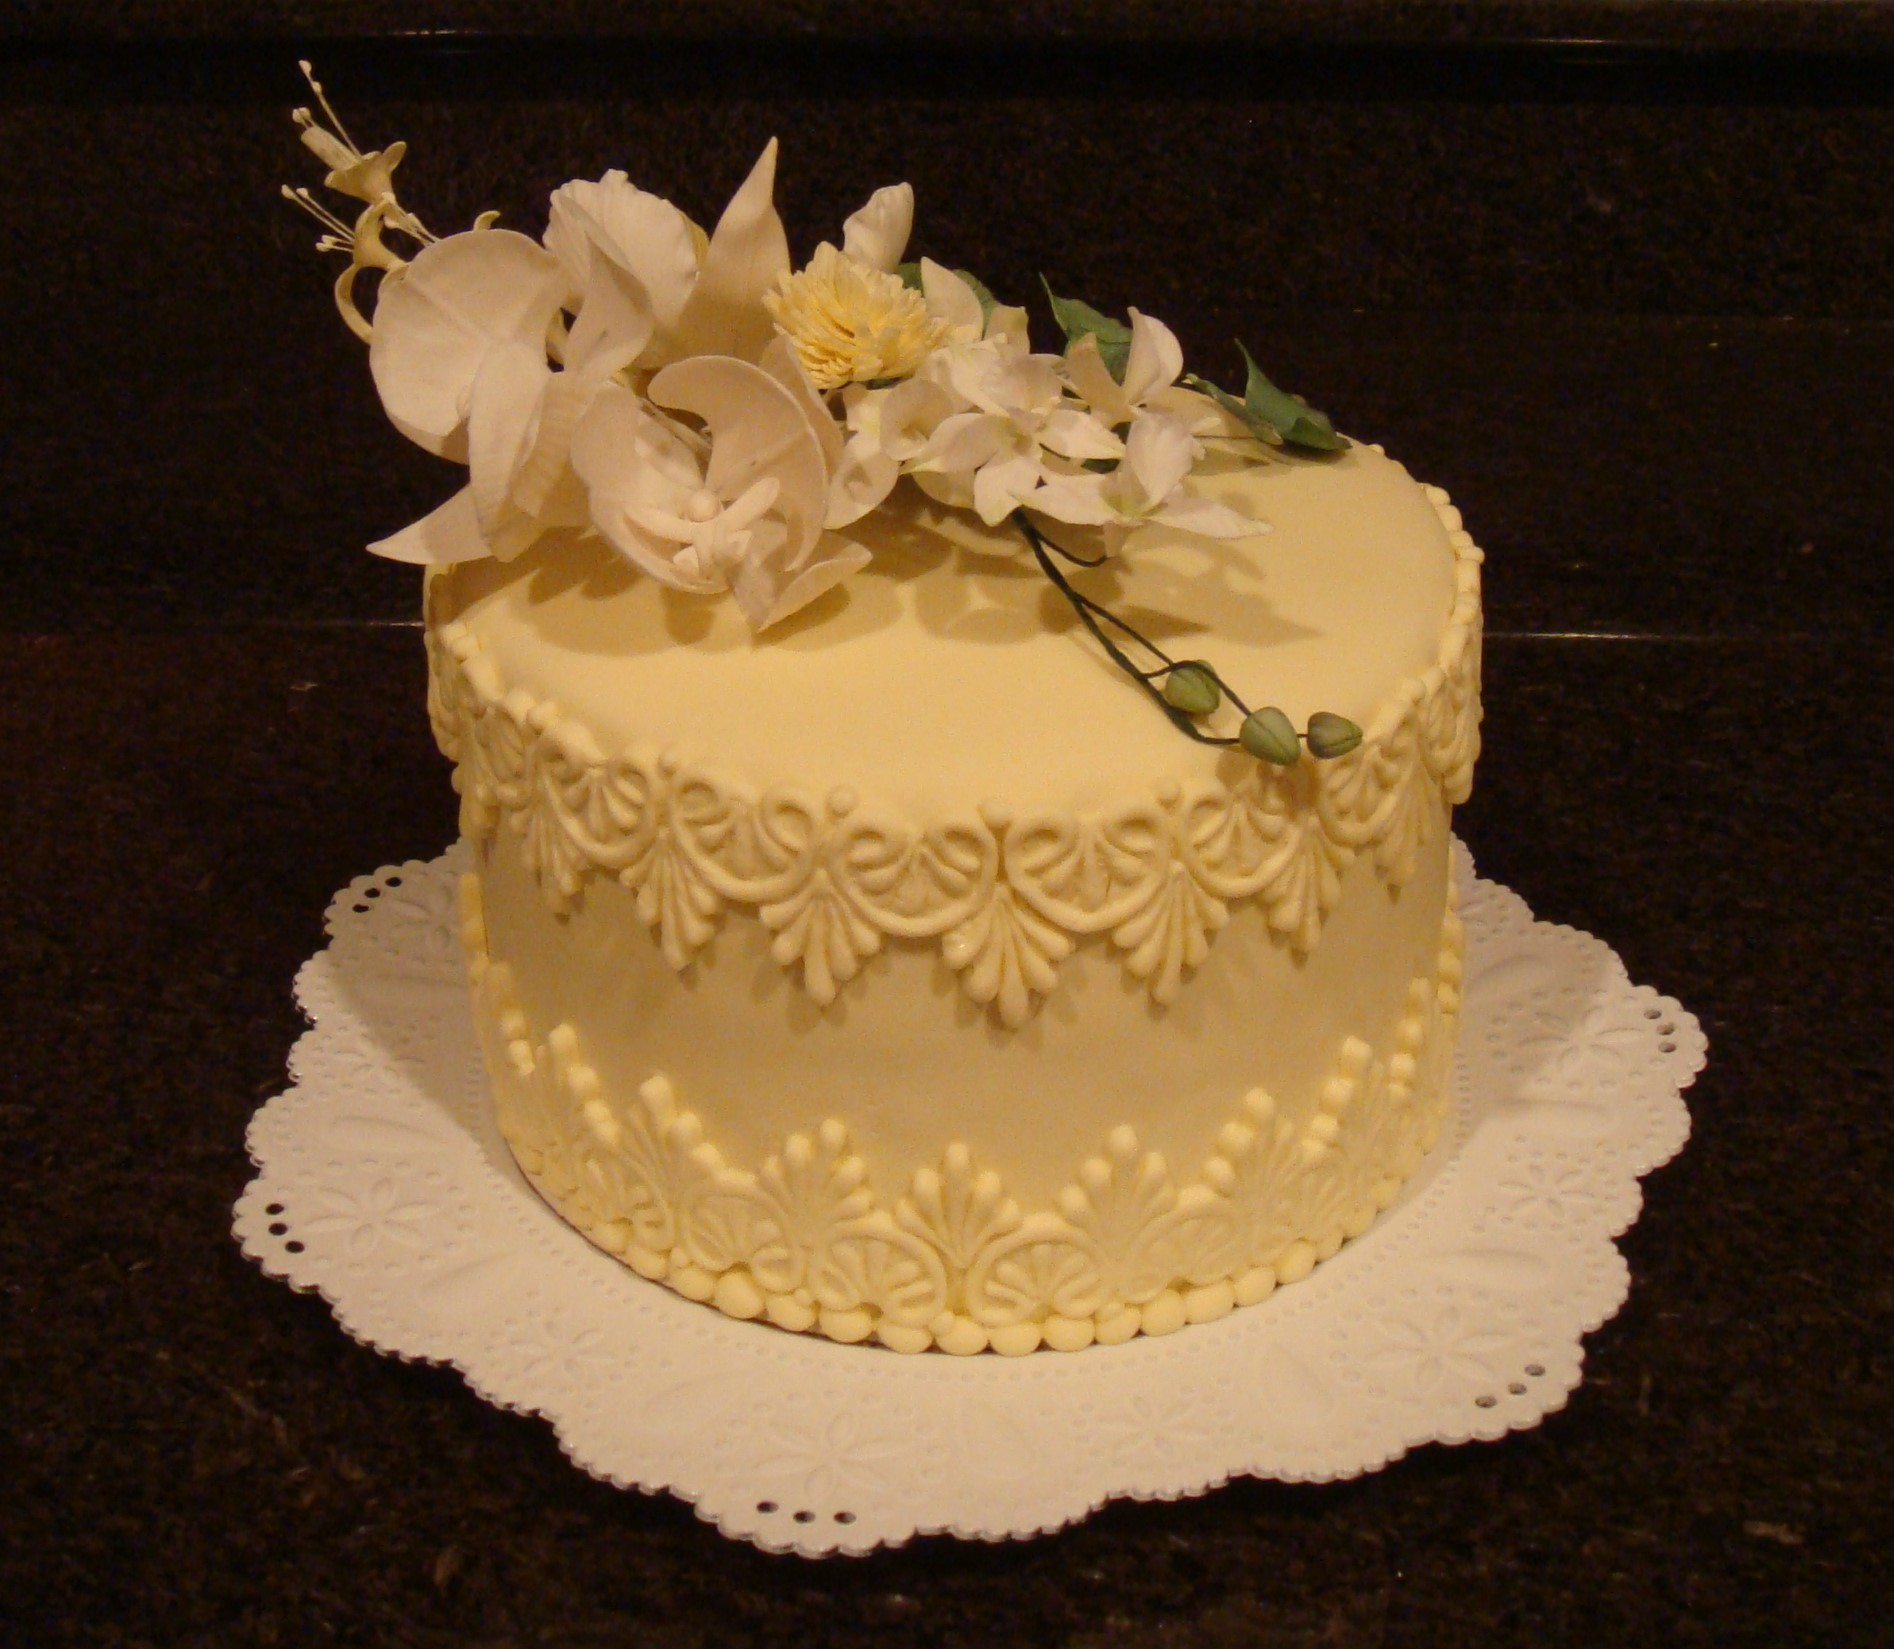 Lemon Curd Cake with Orchids